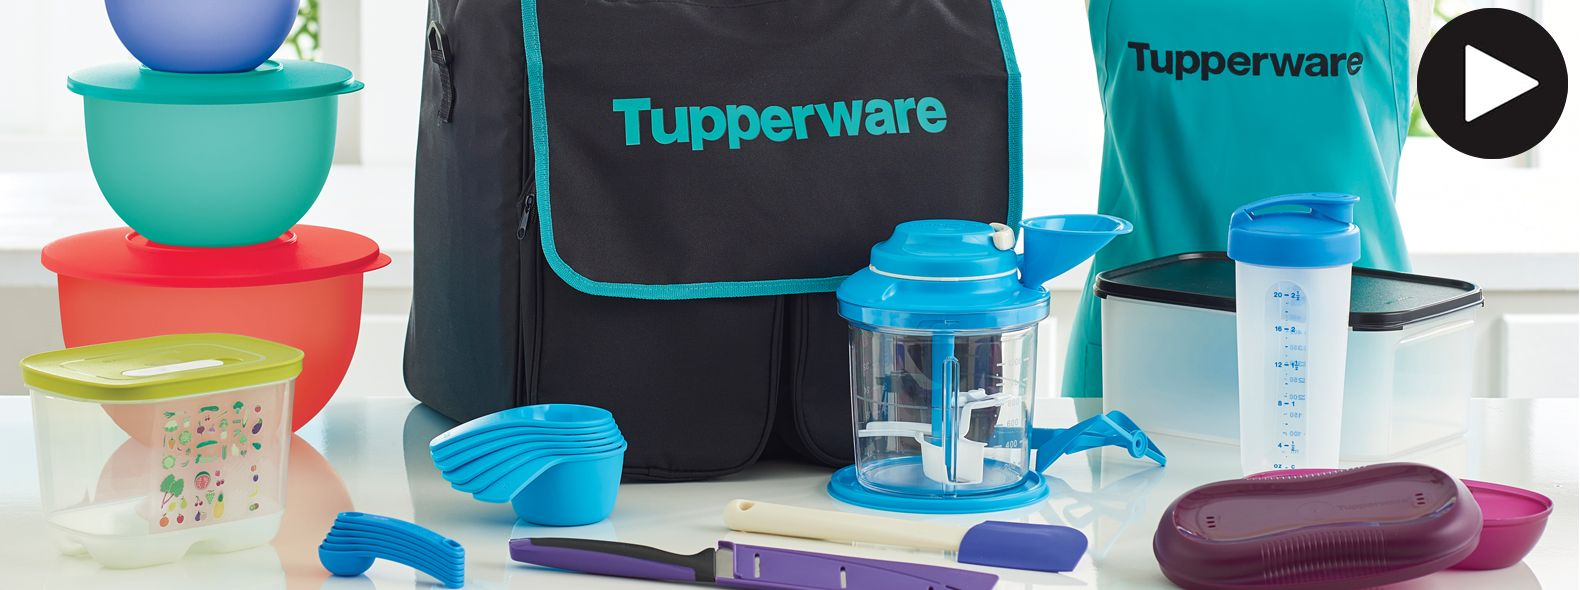 Tupperware Business Kit Summer 2018 Video Sign up to